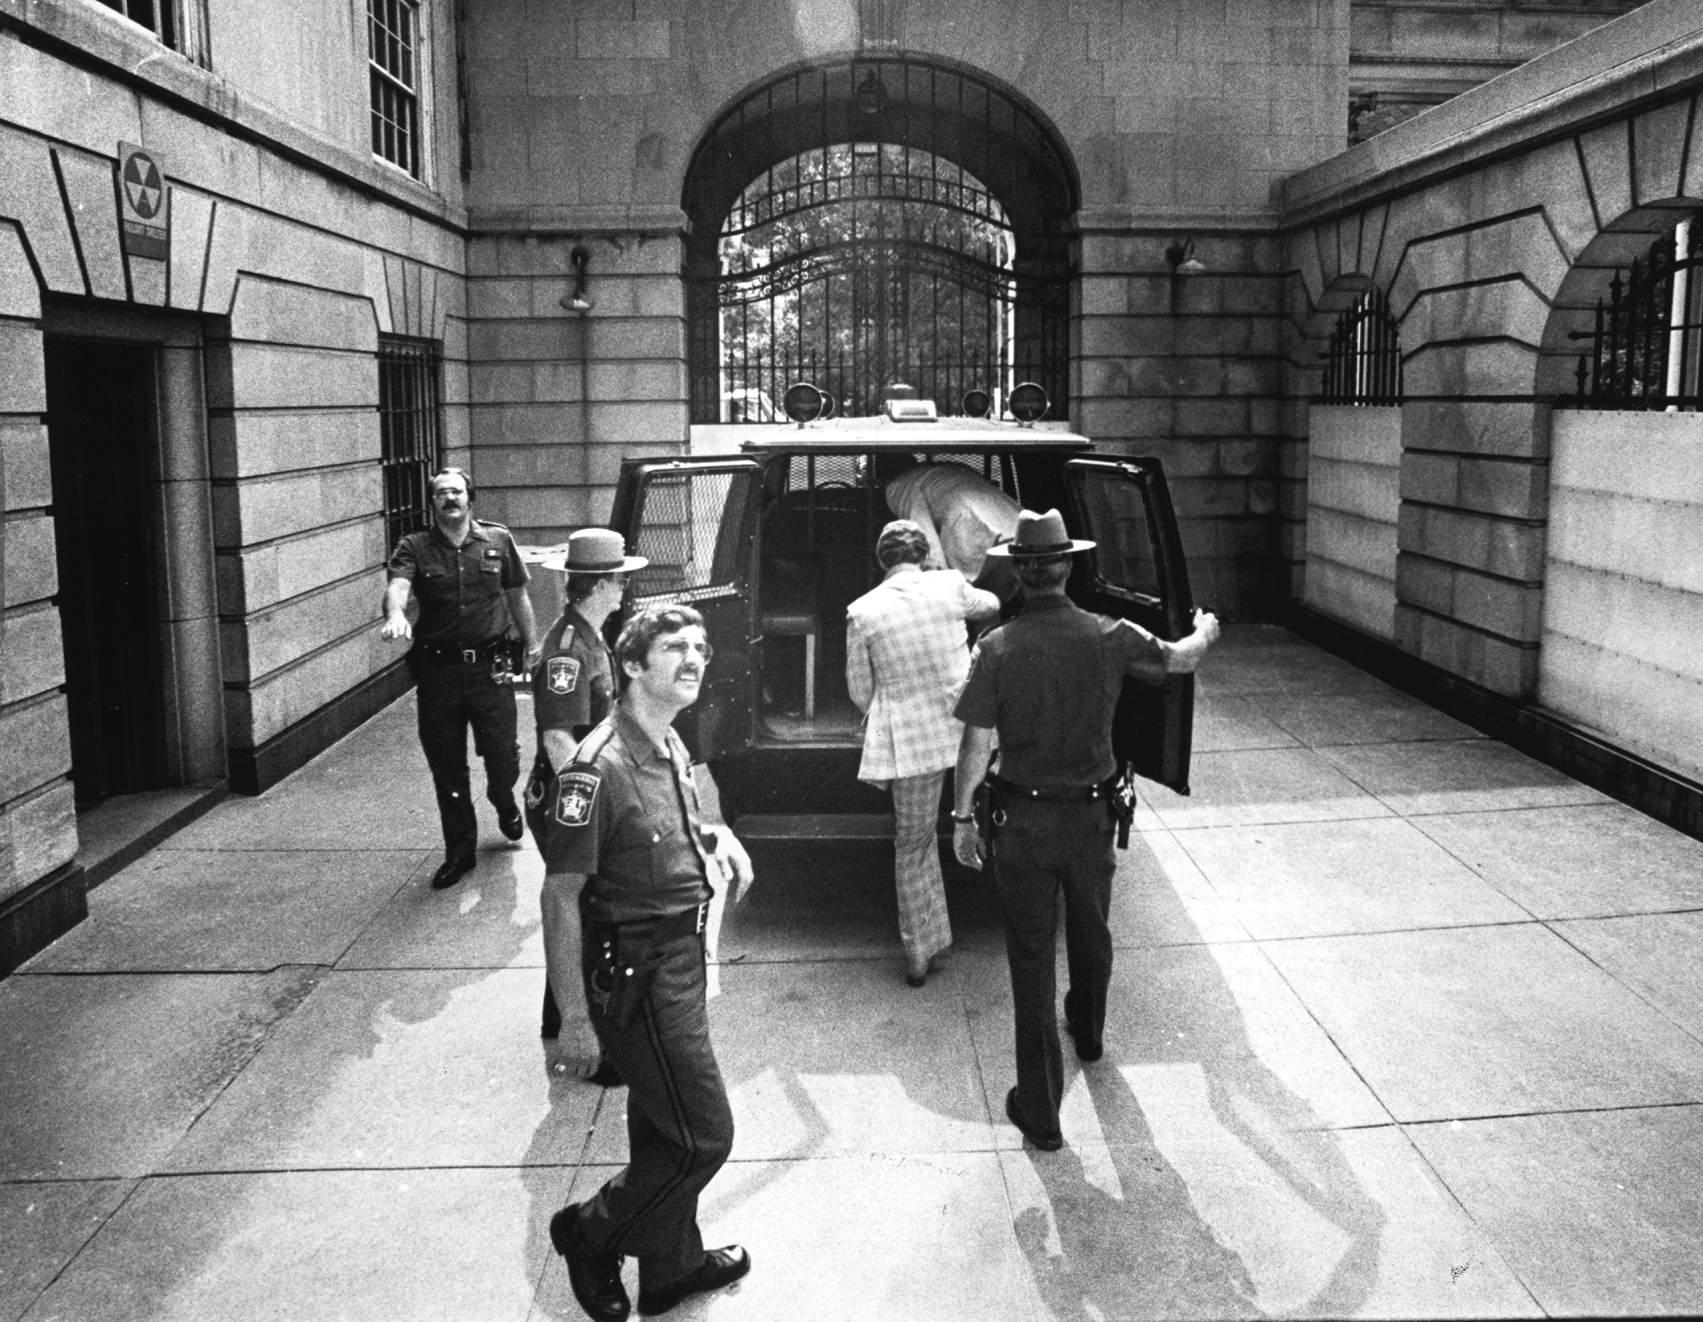 In August 1979, Jerry Tillinghast climbs into a van at Superior Court on his way to prison for the murder of George Basmajian.  Courtesy of the Providence Journal/Michael Delane y.